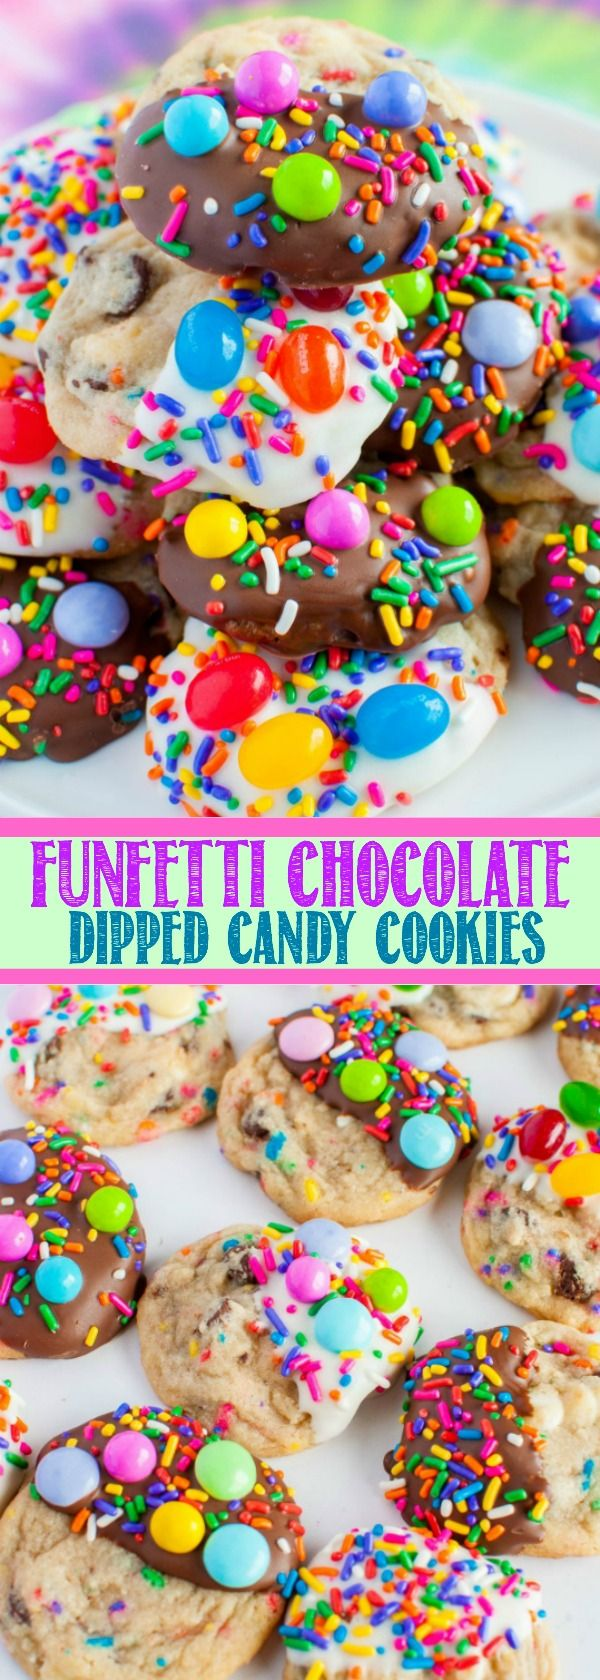 Funfetti Candy Cookies - soft, chewy cookies dipped in chocolate, sprinkles, and candy! Great for Easter dessert, birthday treats, celebrations and parties!